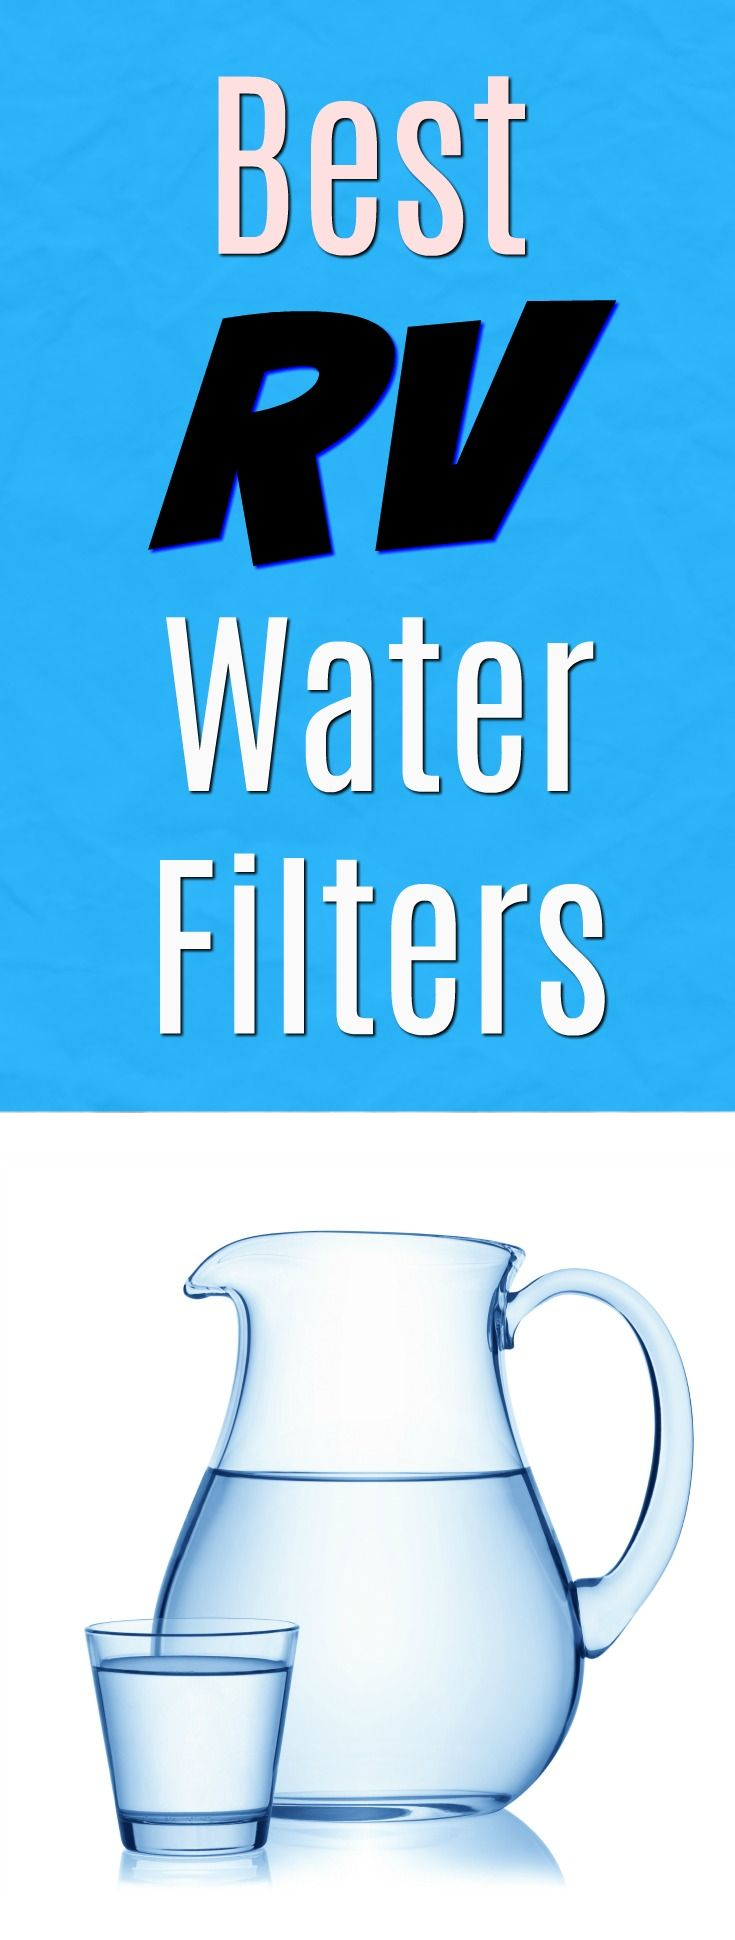 Fresh drinking water in an RV is possible with these RV Water Filters. Forget buying bottled water. Save money, time and energy with these products that remove impurities no matter where you are traveling. #RV via @GetGreenBeWell